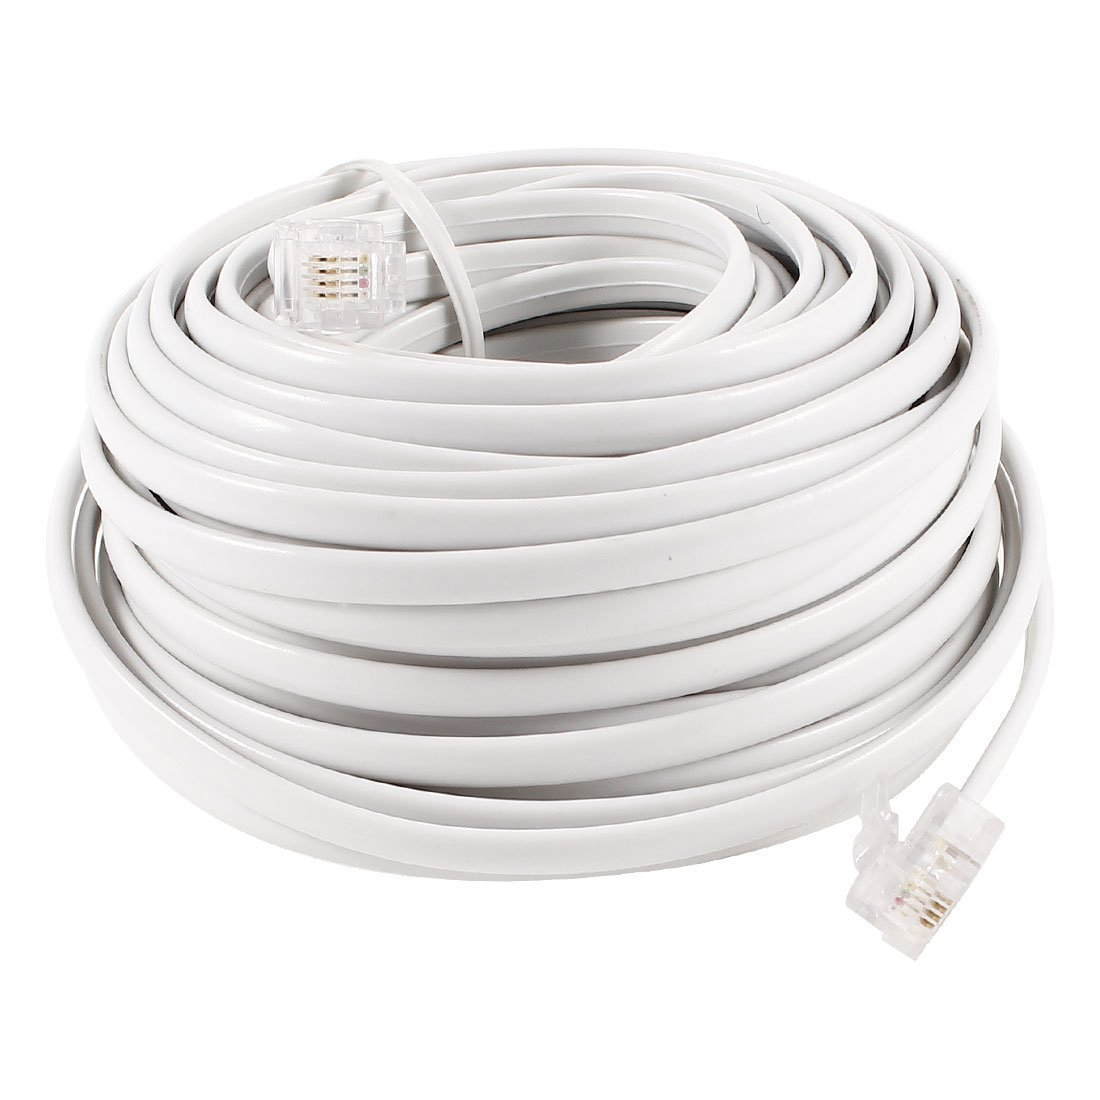 hight resolution of get quotations home mart 100936rj11 6p4c reverse landline telephone cable 38 feet for voice